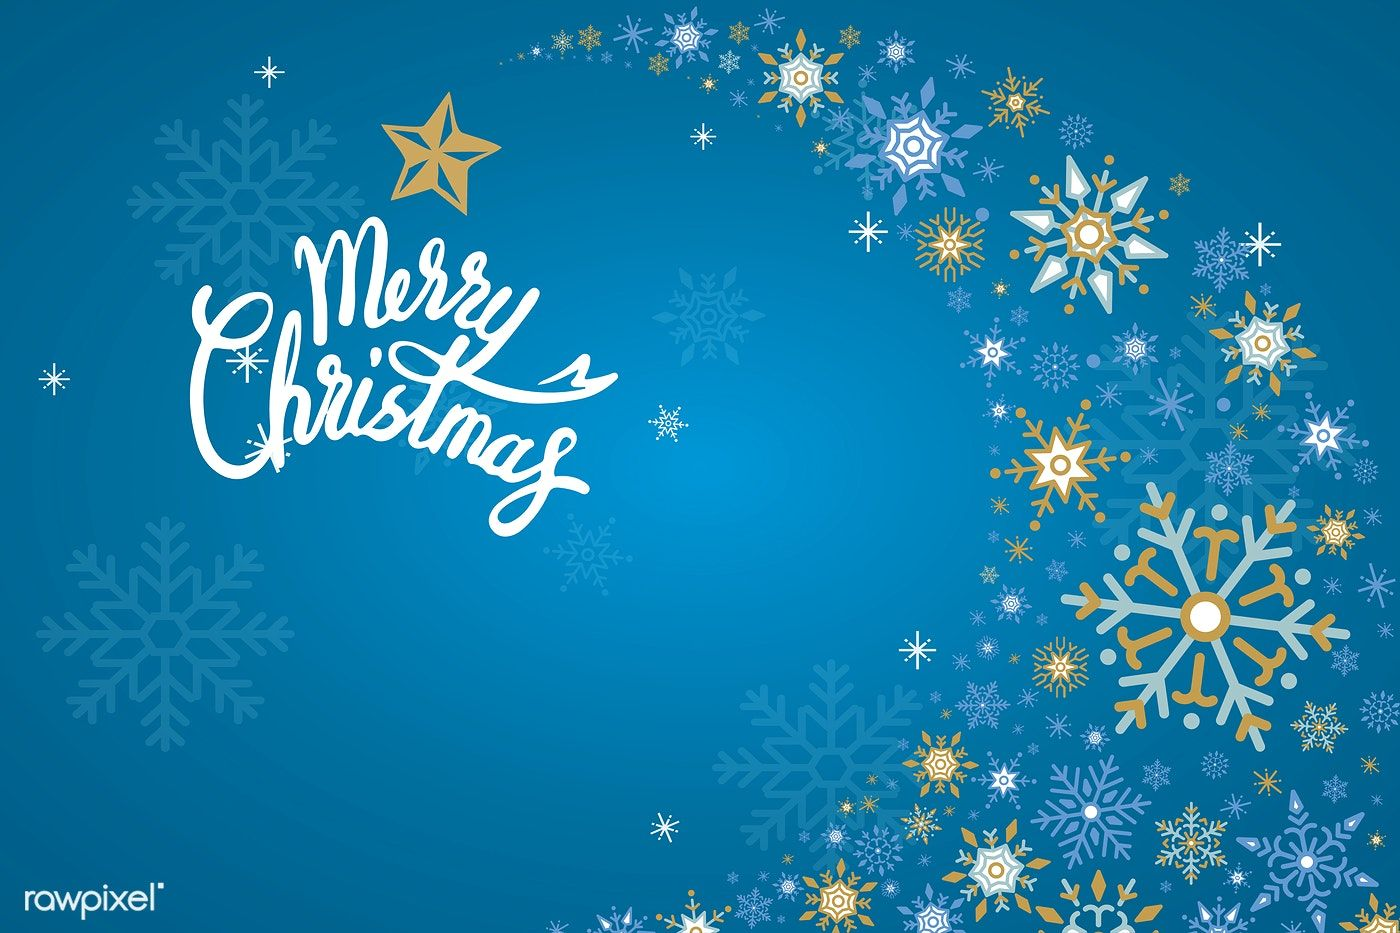 Merry Christmas Winter Holiday Background Vector Free Image By Rawpixel Com Holiday Background Winter Holidays Merry